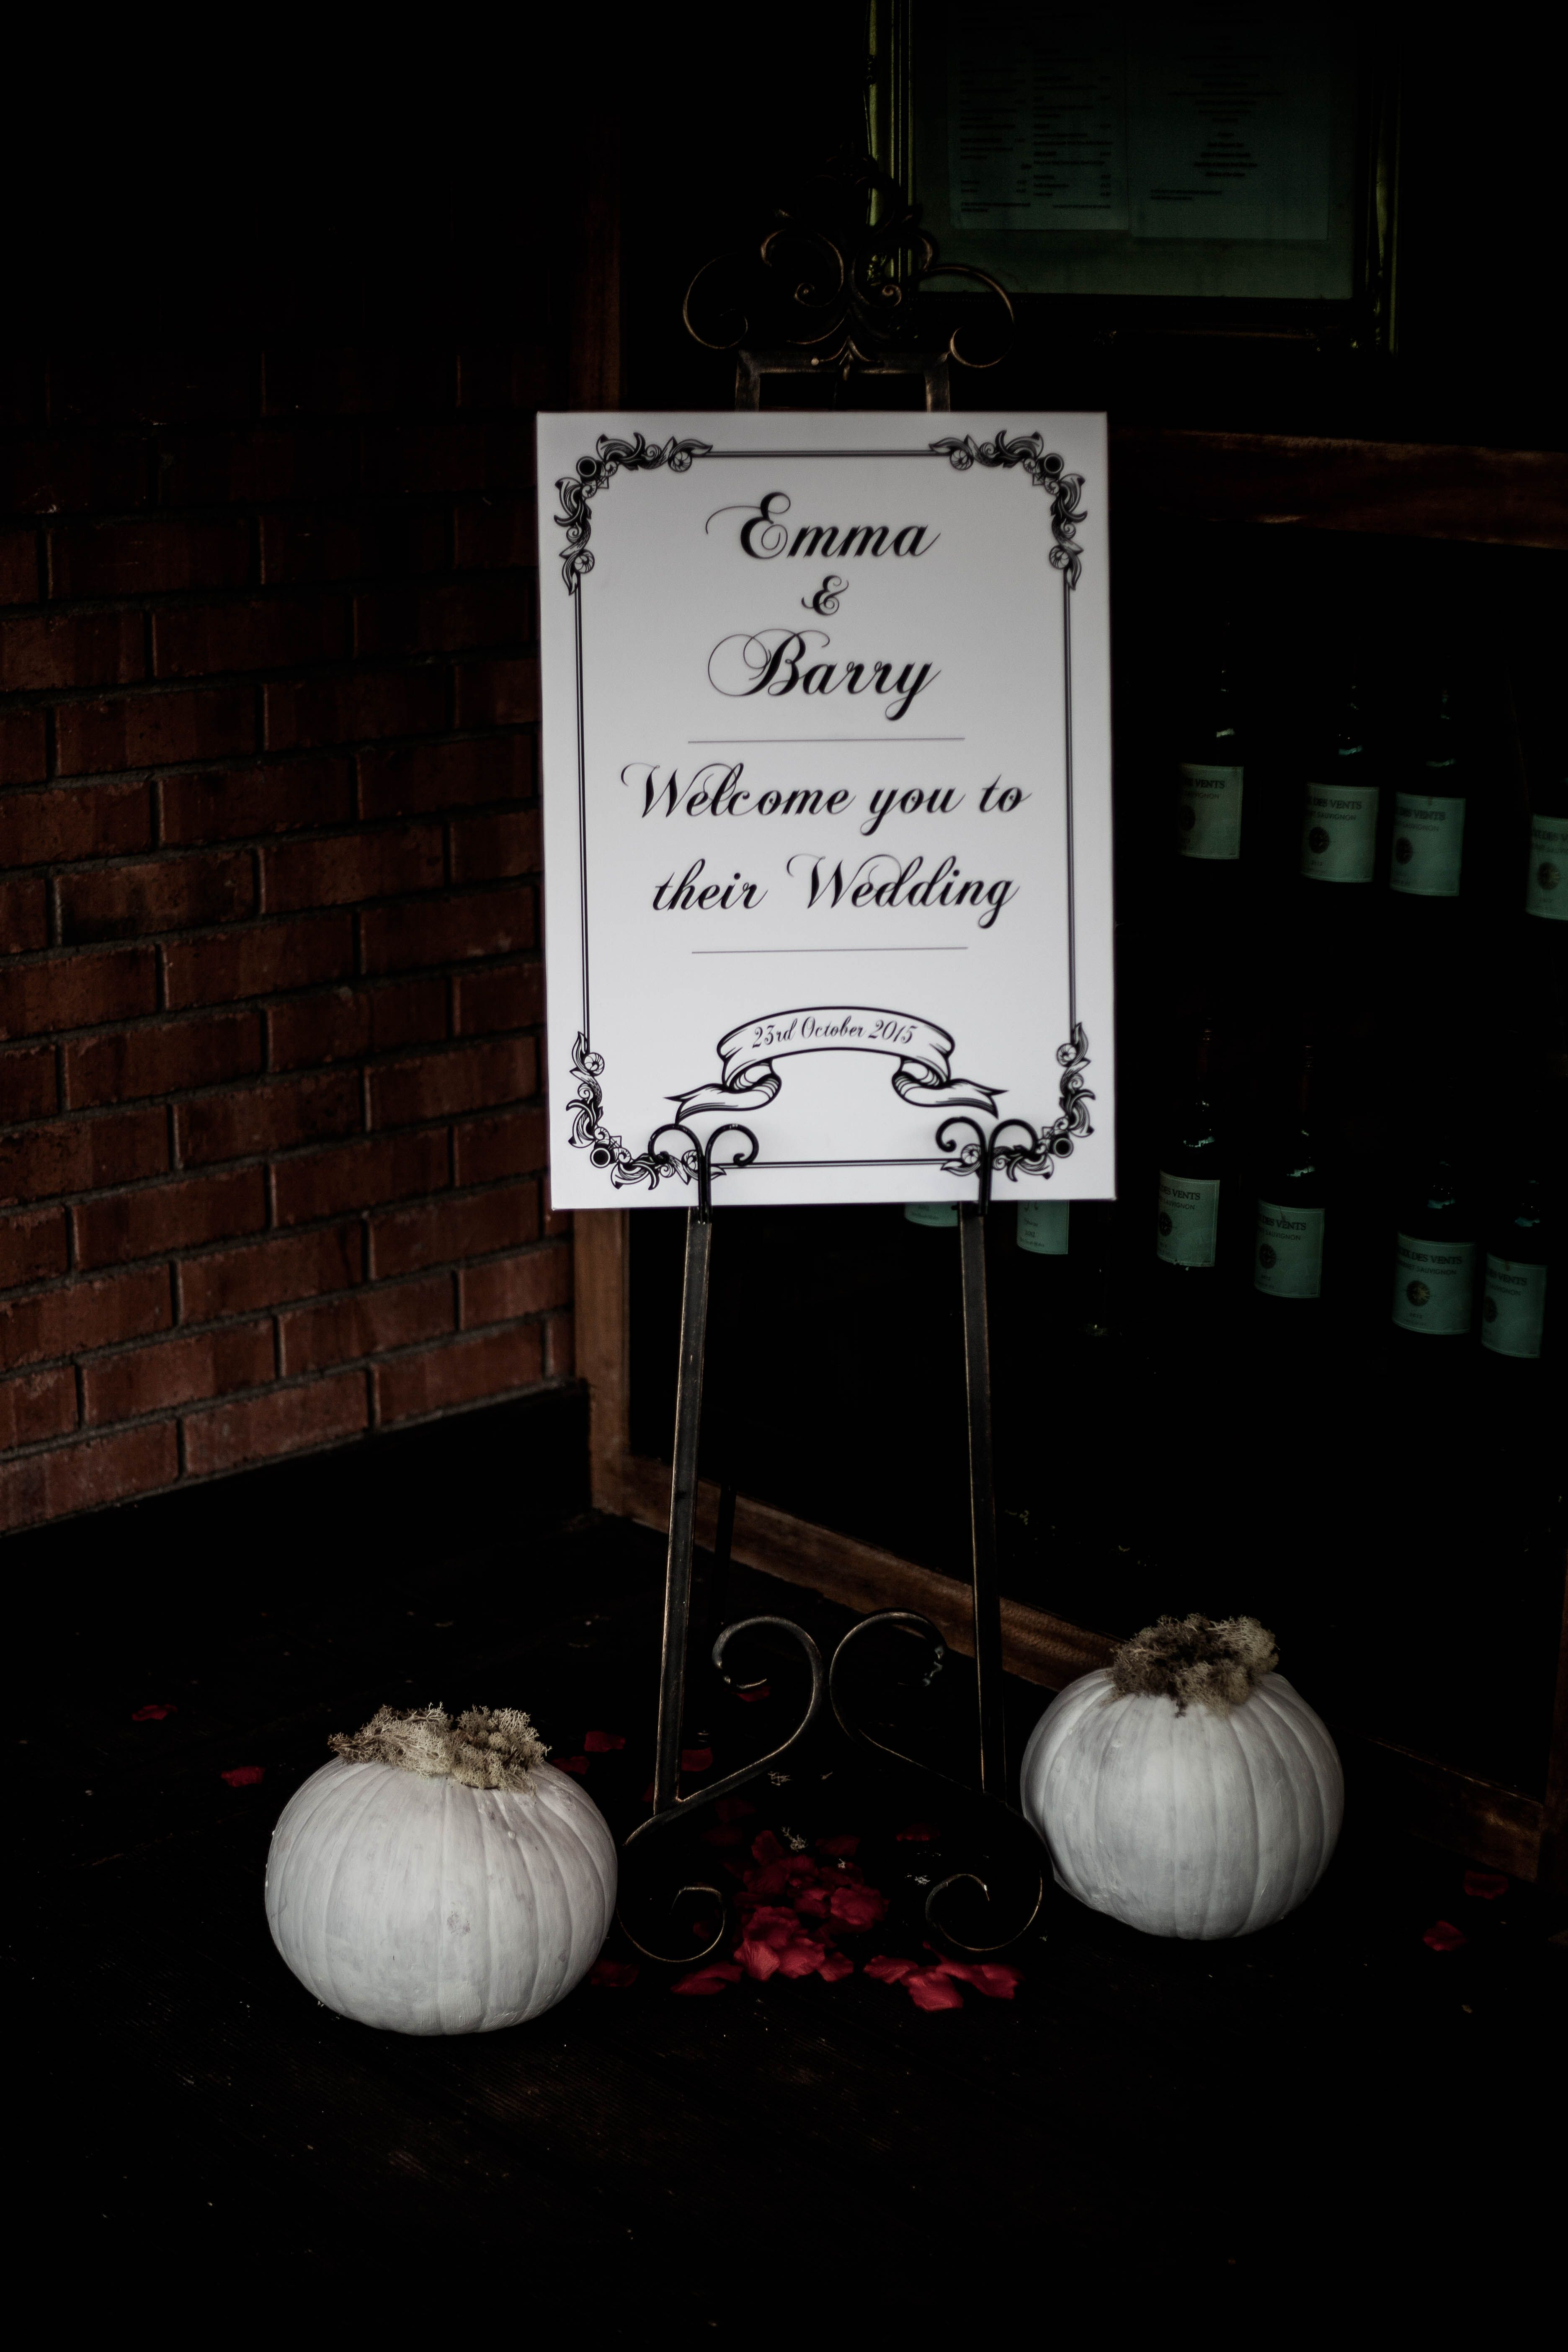 Pin by Wild Things Wed on Emma & Barry\'s Quirky Tim Burton Themed ...